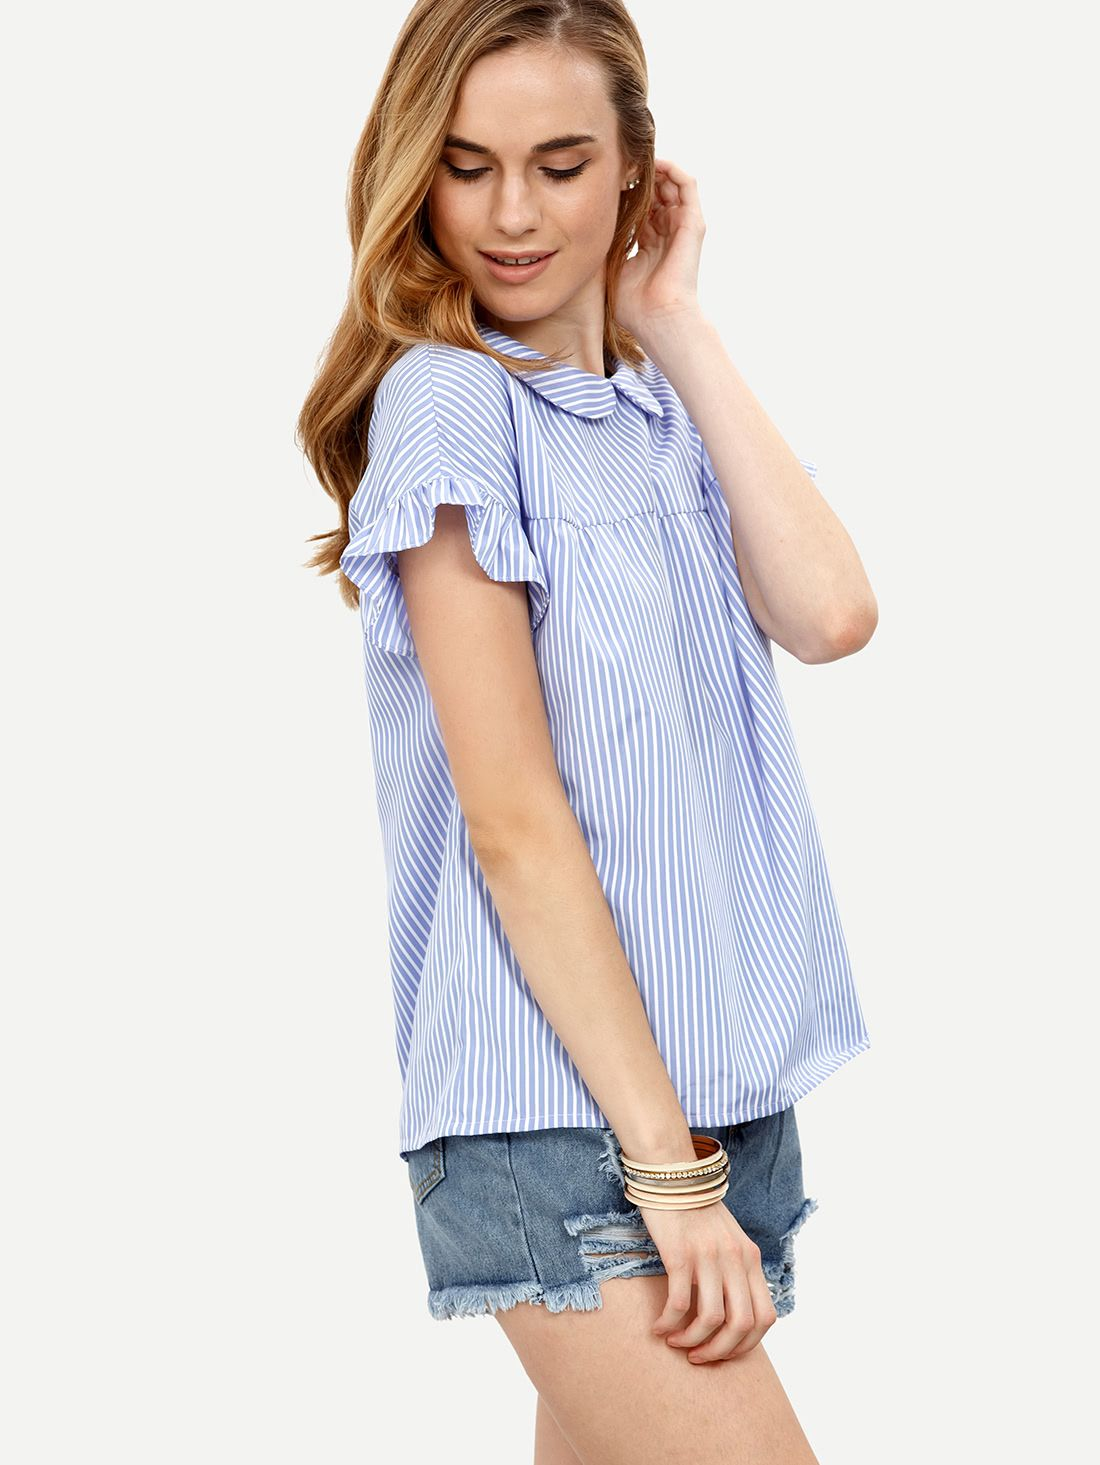 Striped Peter Pan Collar Shirt From Shein This Is An Affiliate Link